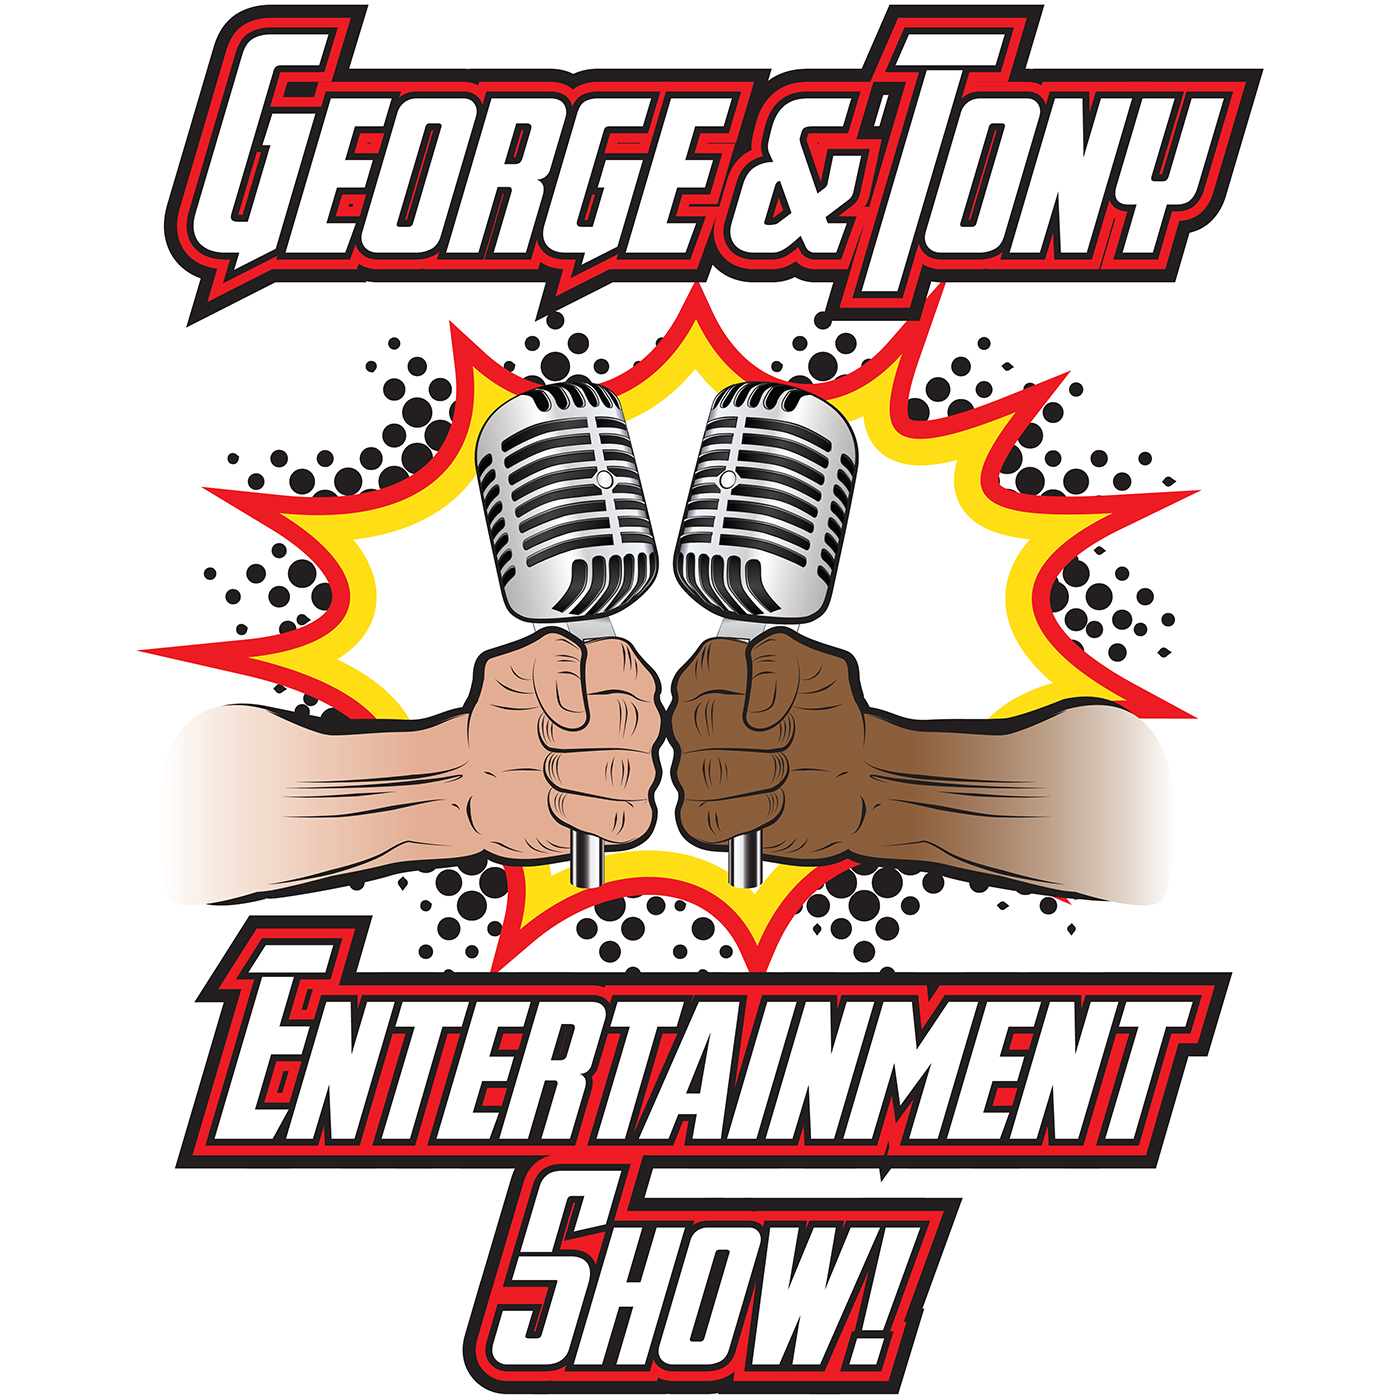 George and Tony Entertainment Show #149